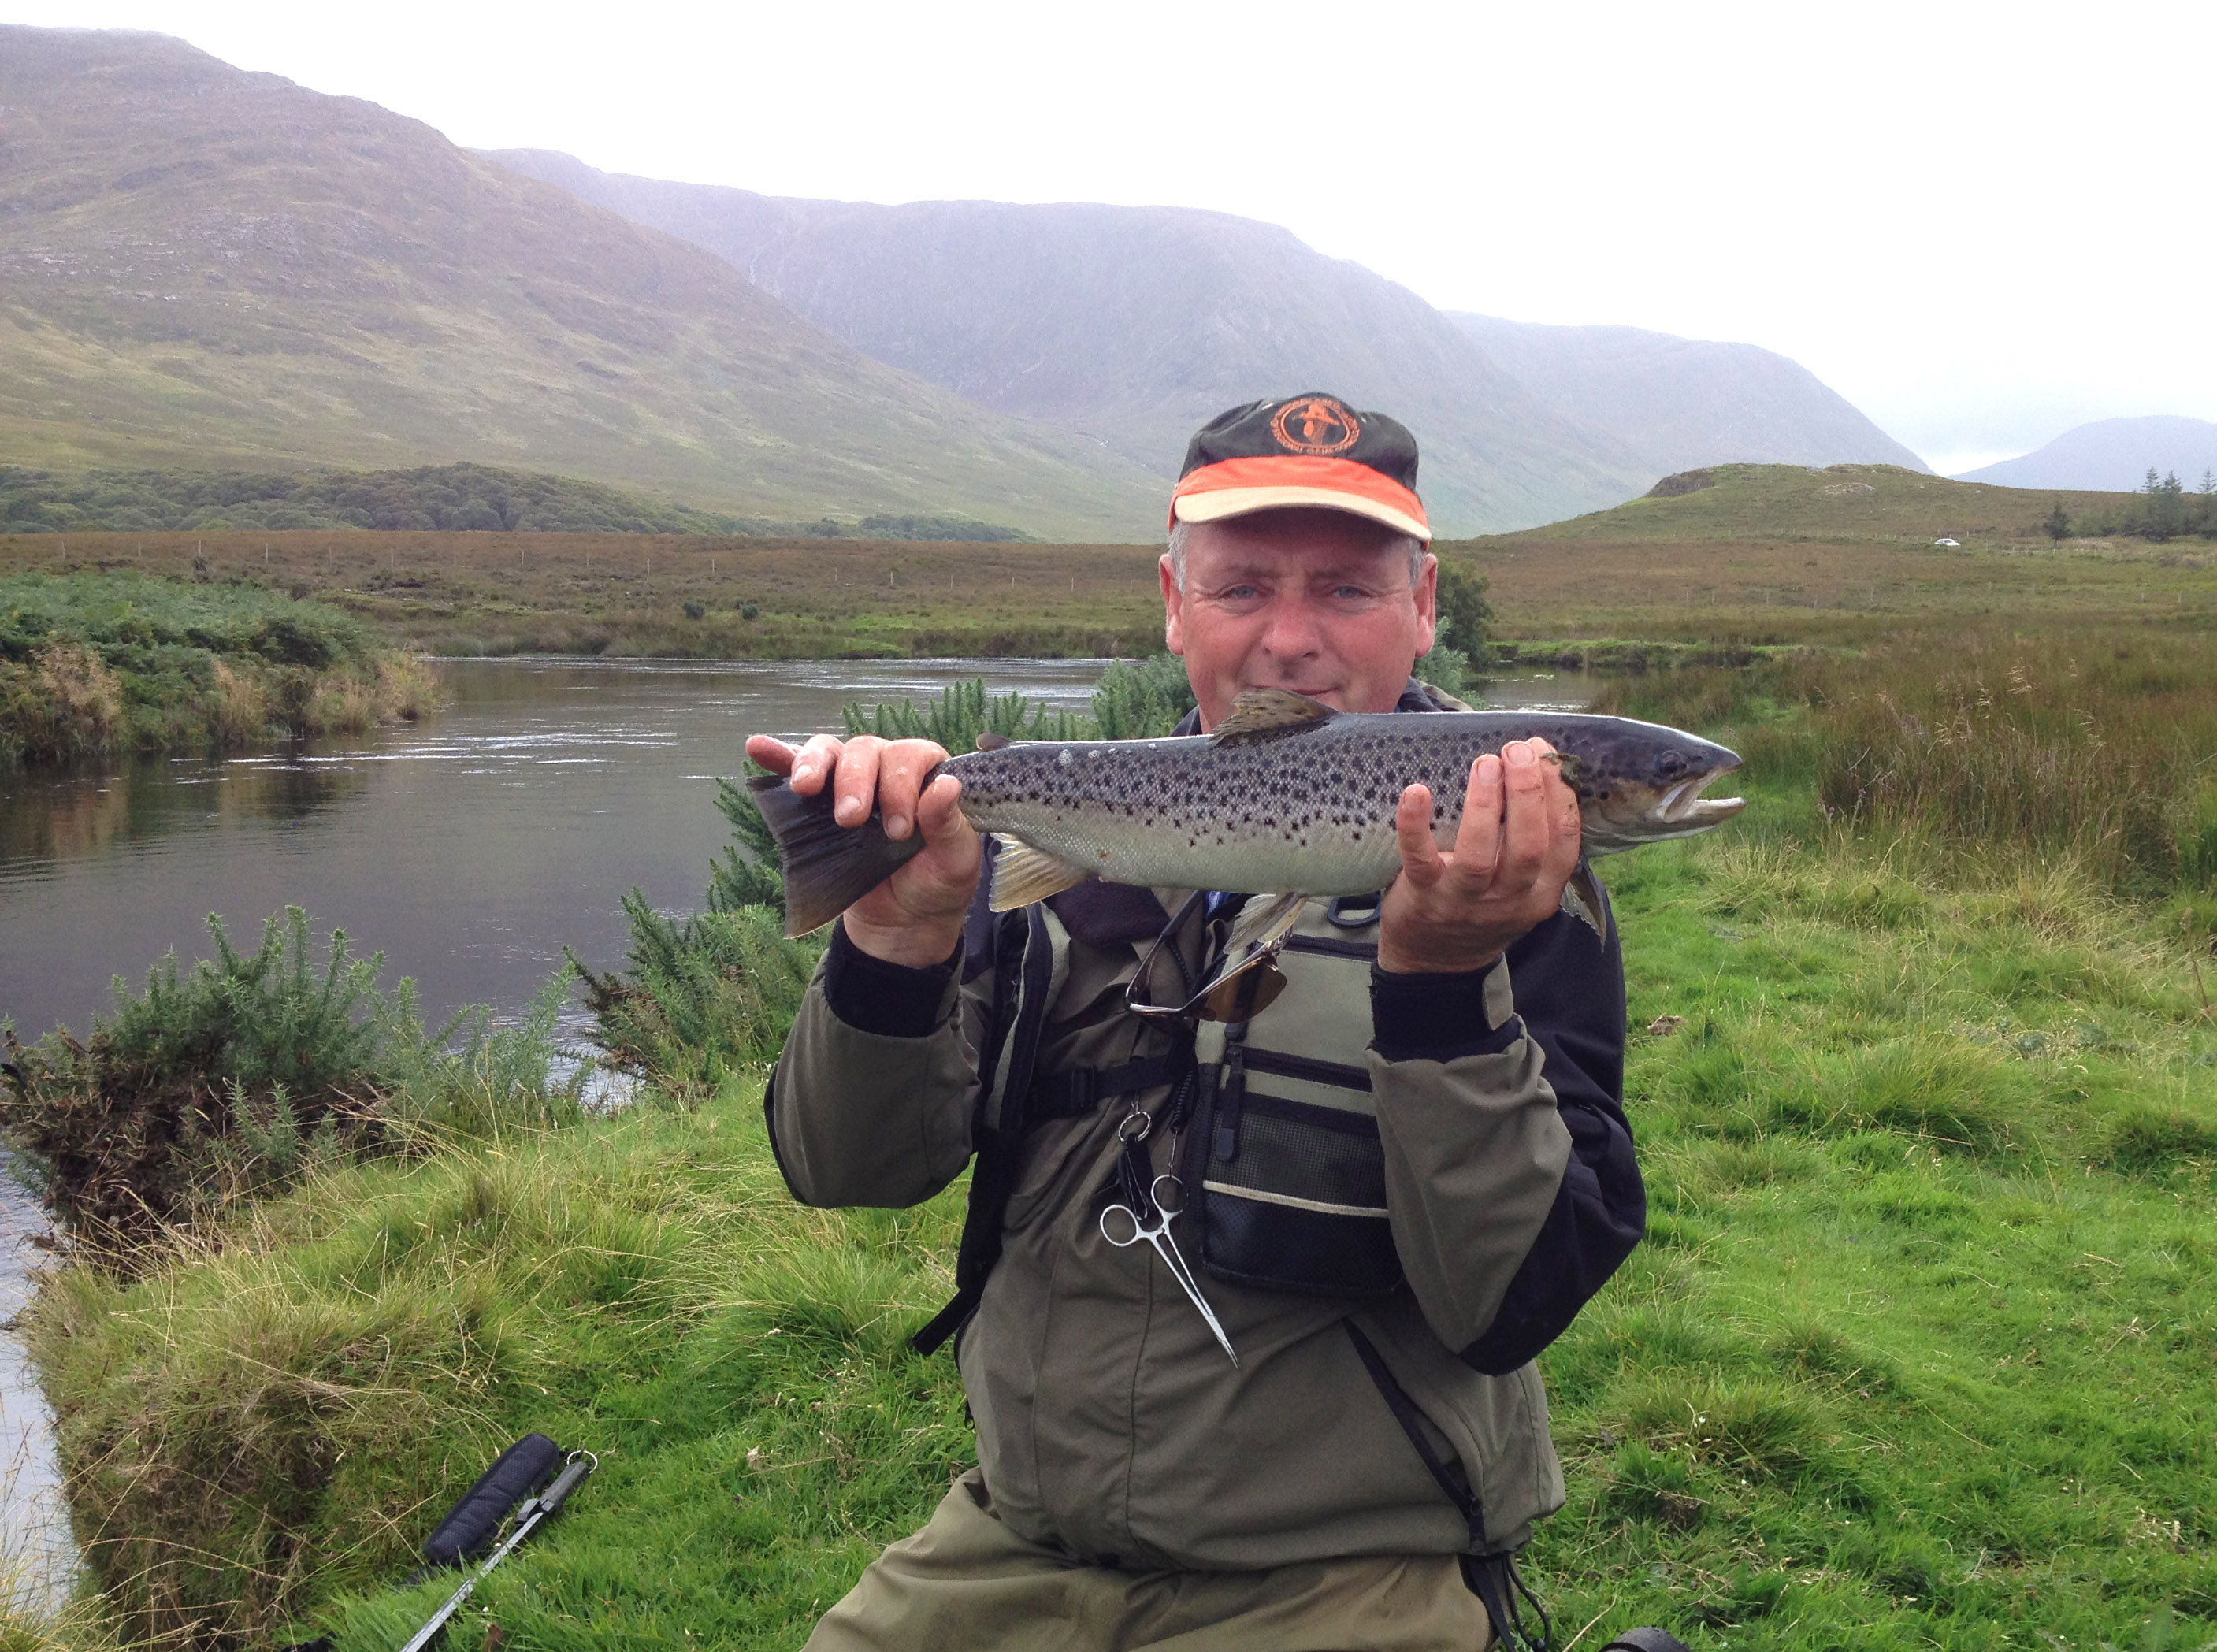 Philip_Harte_3lbs_sea_trout_Erriff_August_2014_1.JPG